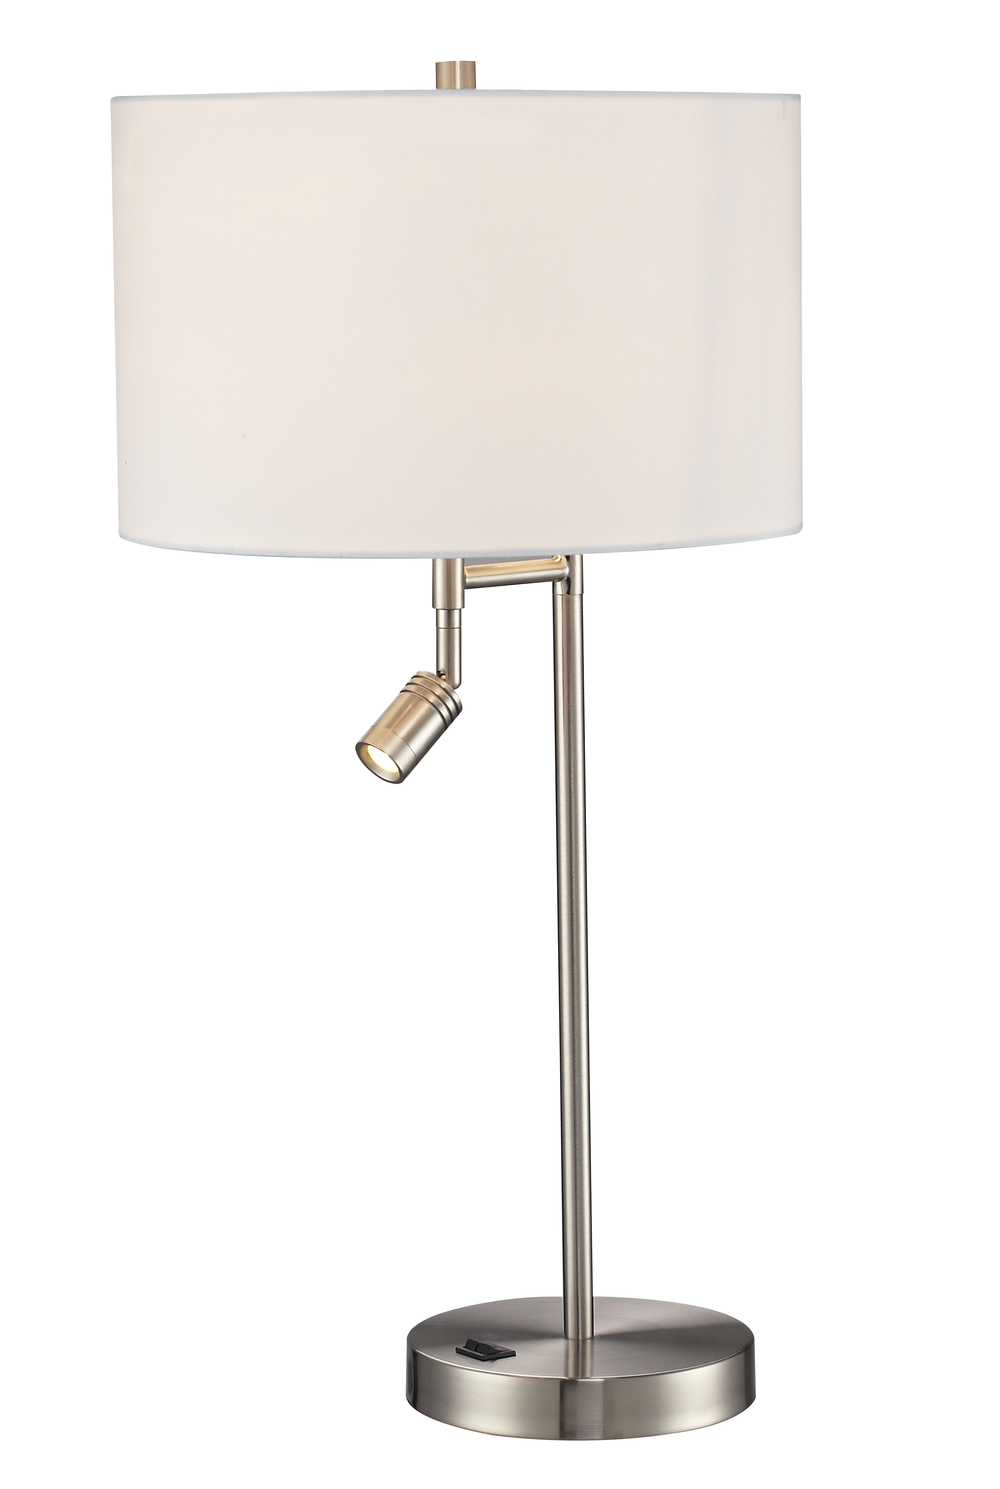 10009 | SEEMORE TABLE LAMP